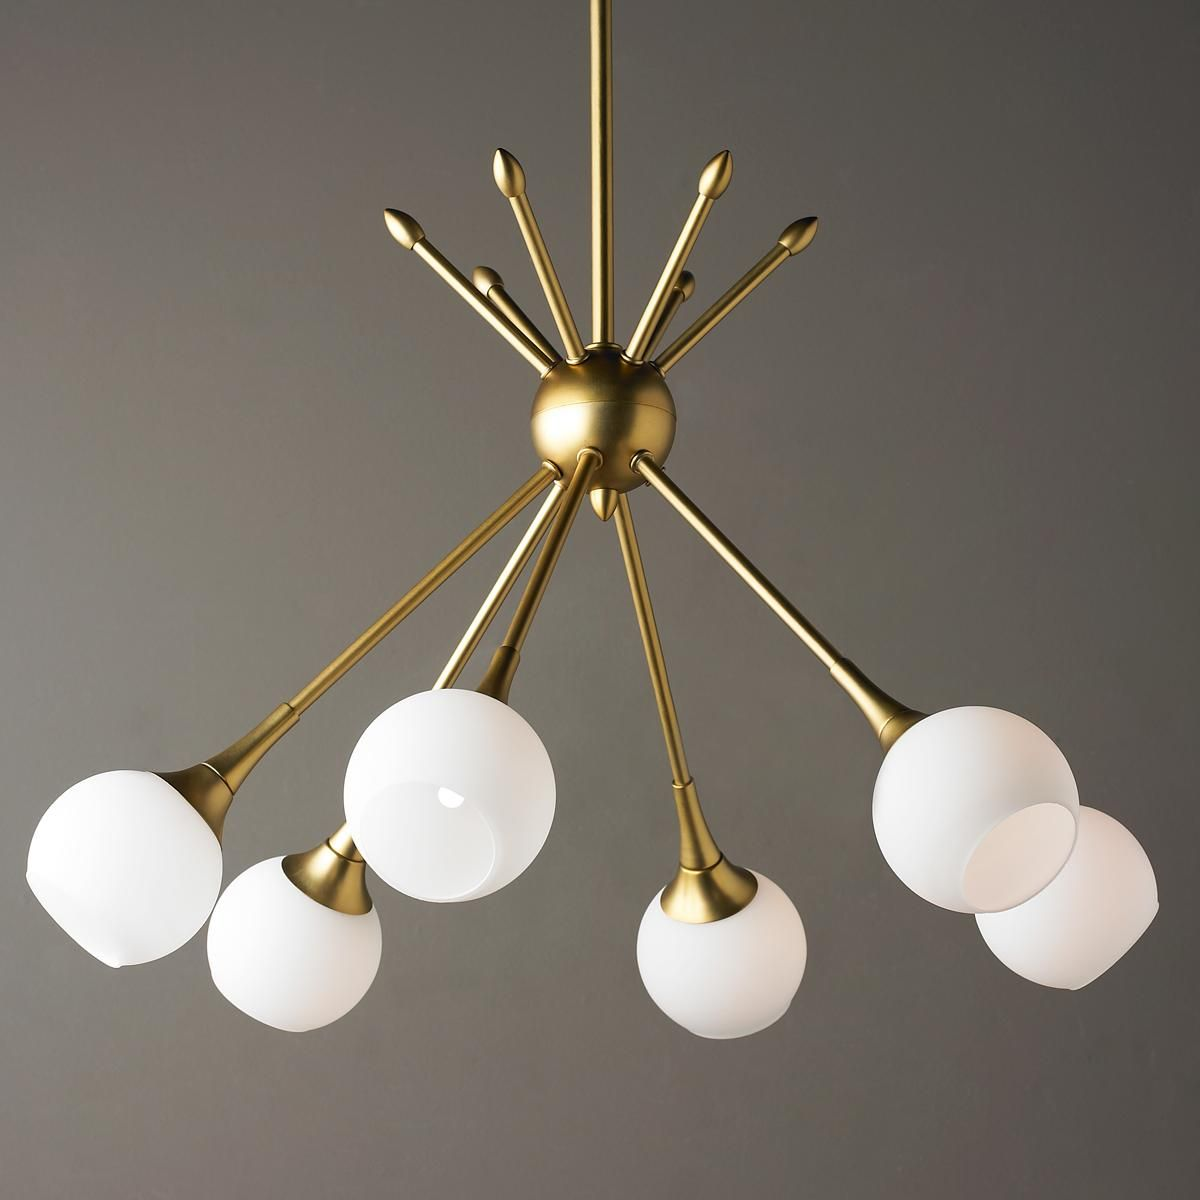 Mid century modern mobile chandelier 6 light iluminacin luces mid century modern mobile chandelier 6 light aloadofball